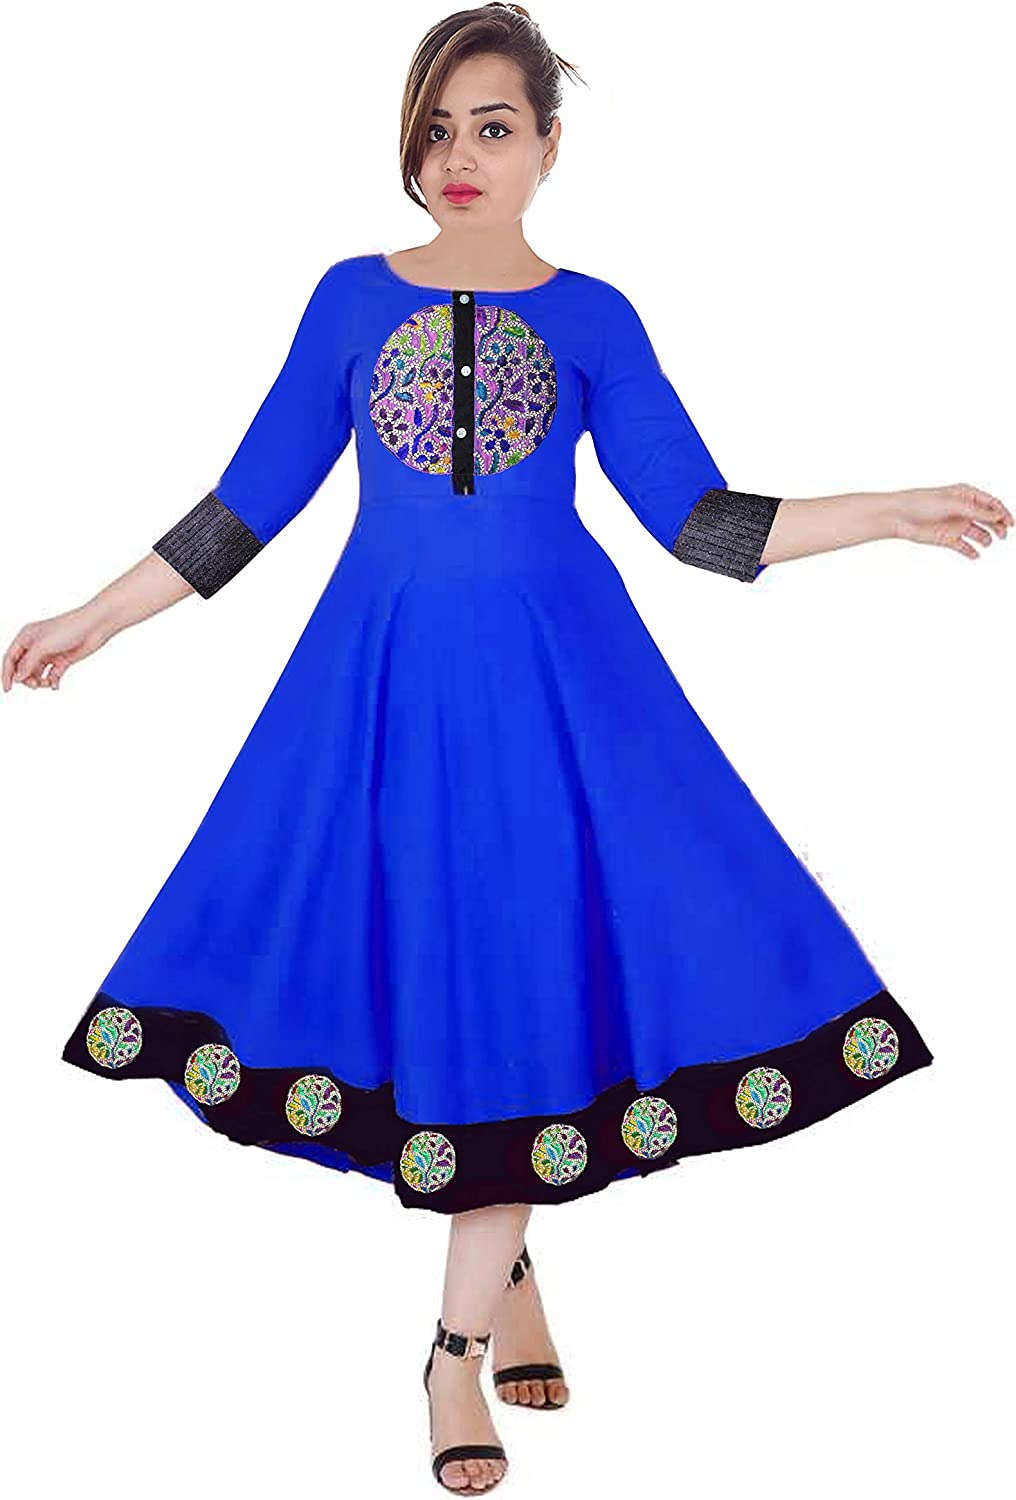 Lakkar Haveli Women Embroidered Dress Ethnic Maxi Dress Casual Long Frock Suit Party Wear Tunic Royal Blue